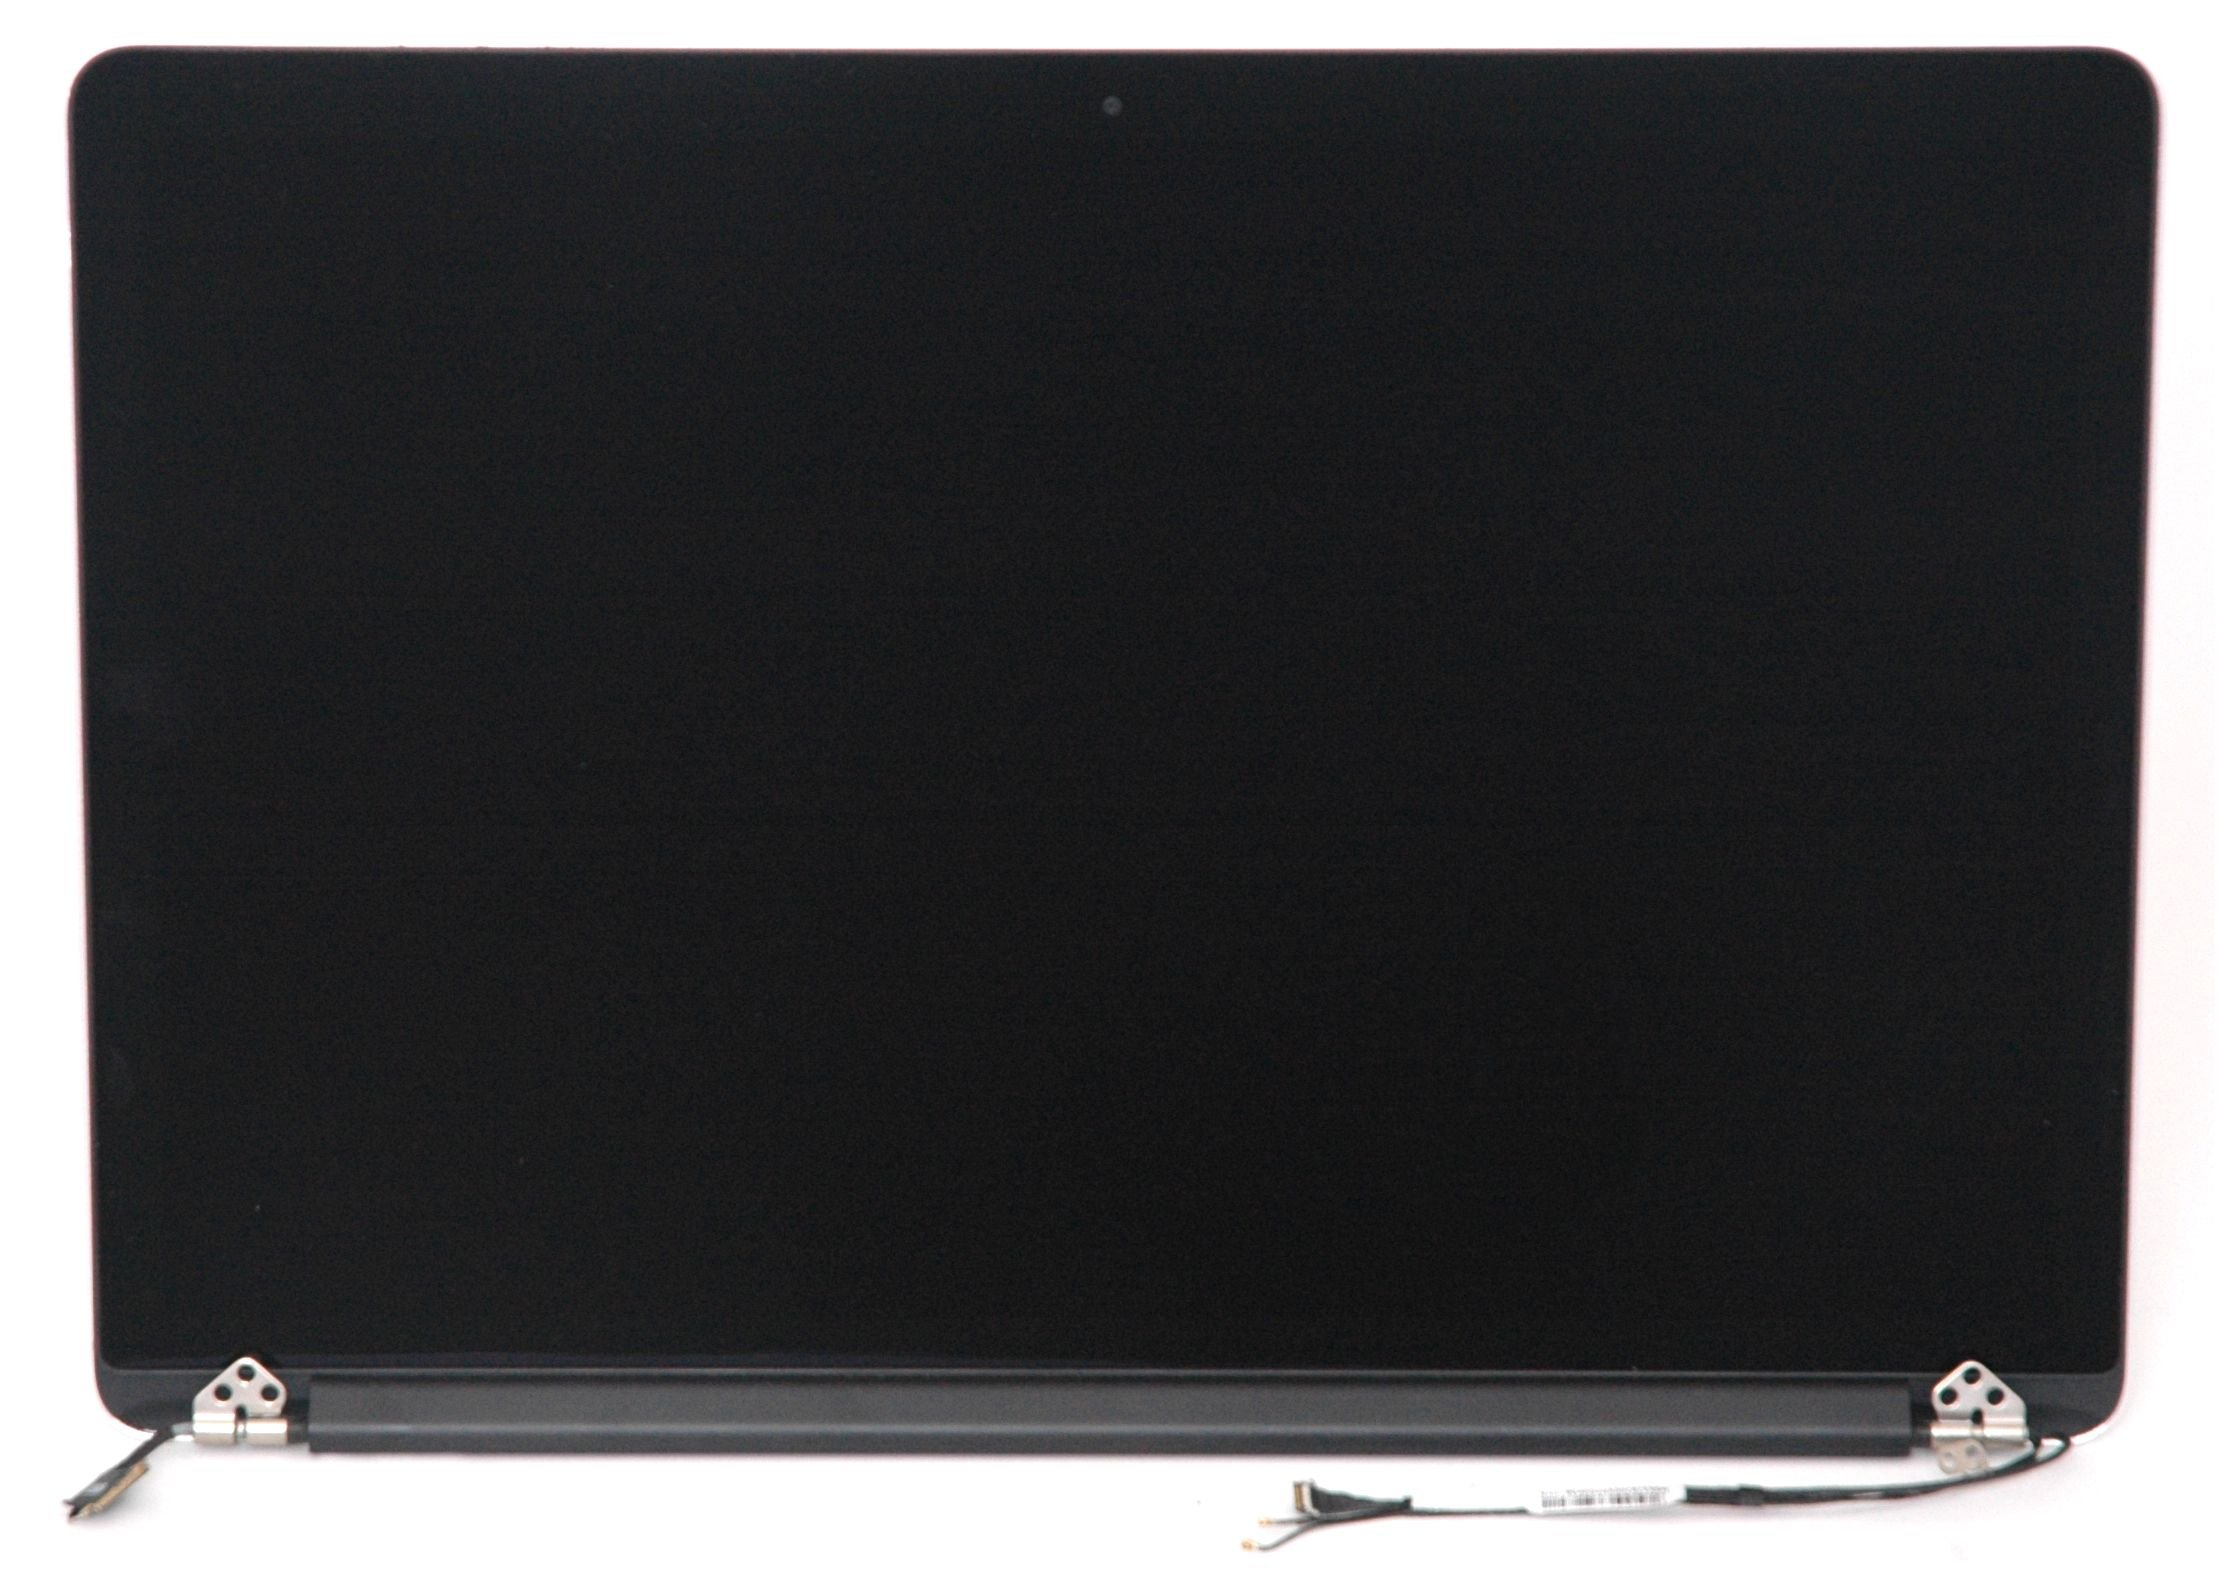 Apple MacBook Pro 15'' A1398 Late 2013/Mid 2014 Only- Retina Display Full LCD LED Display Screen Assembly Repair Part 661-8310